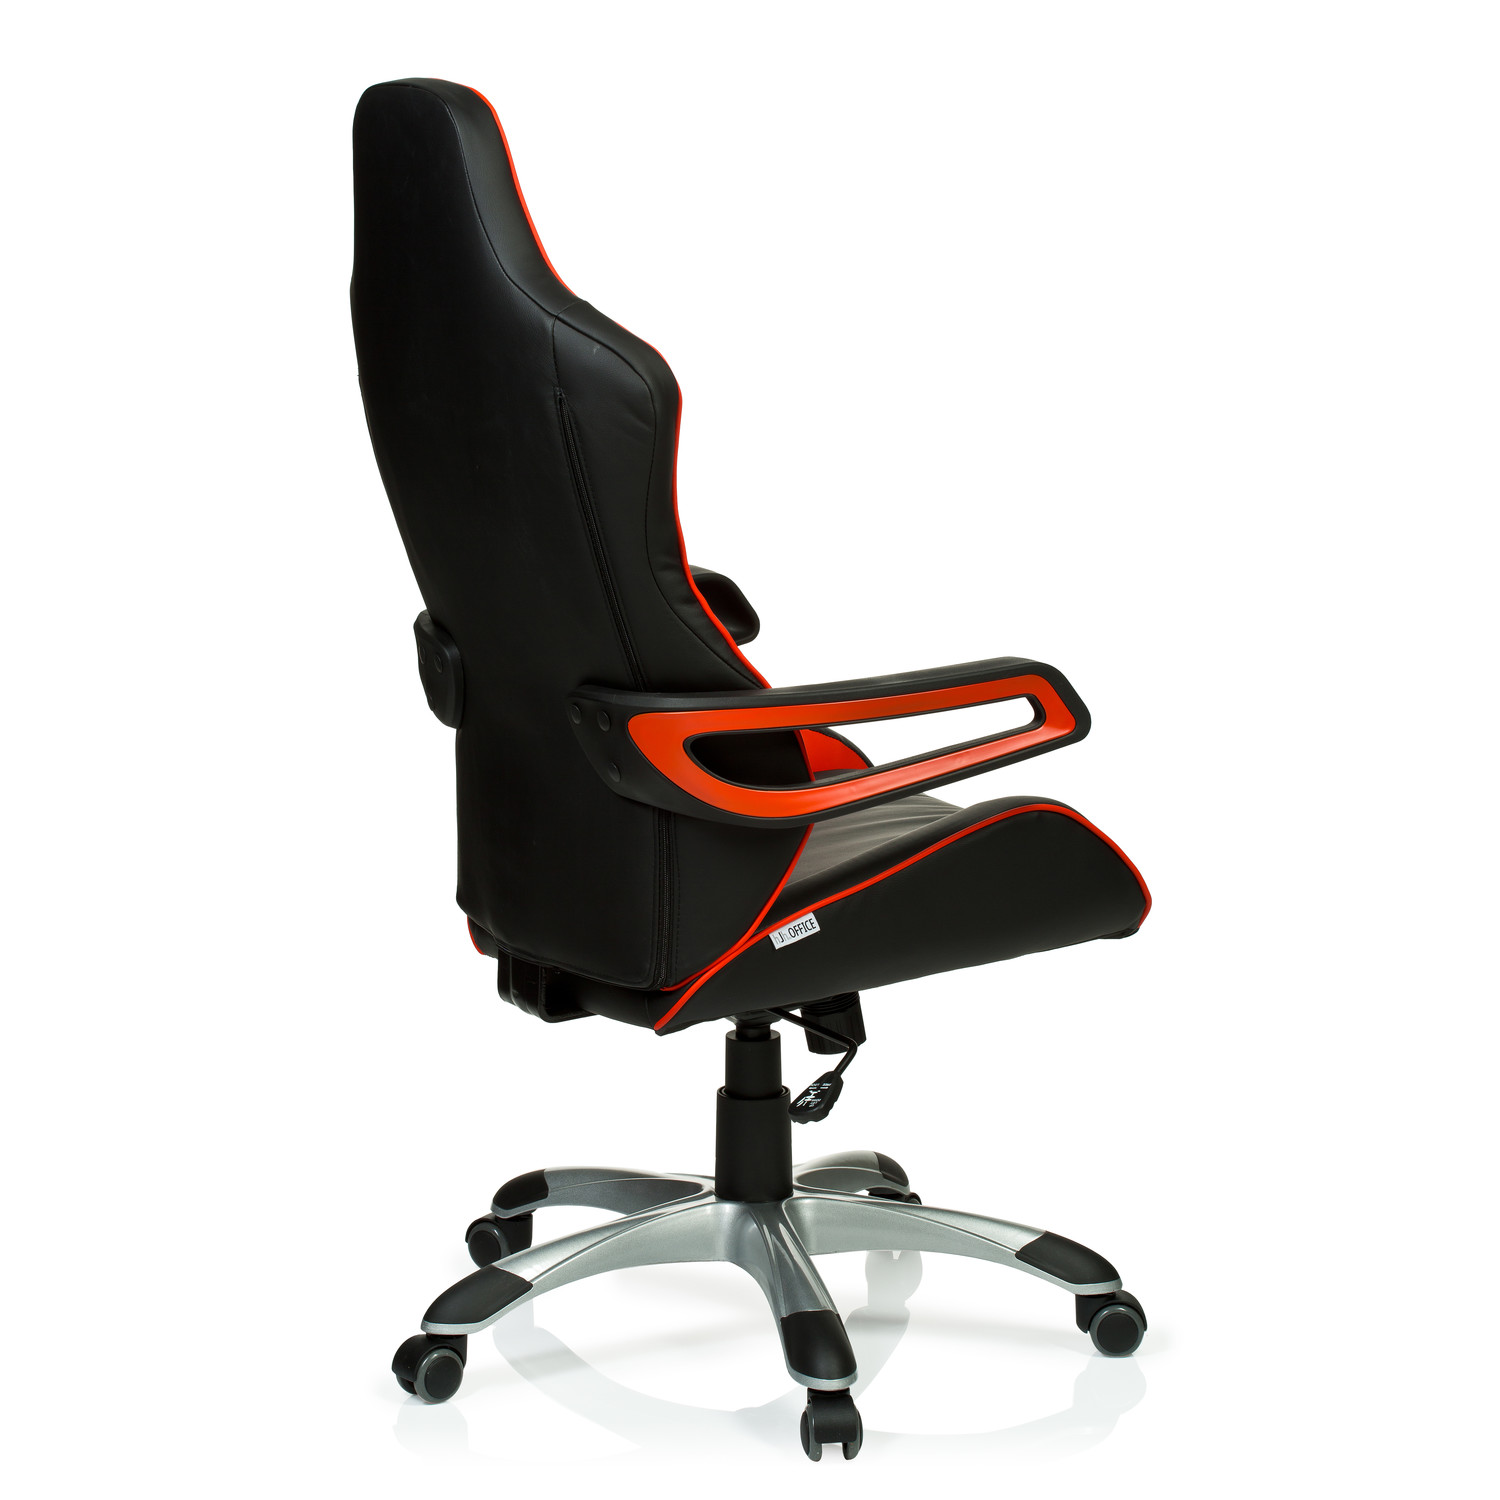 Silla de ordenador gaming racer pro en color rojo negro for Silla ordenador gaming